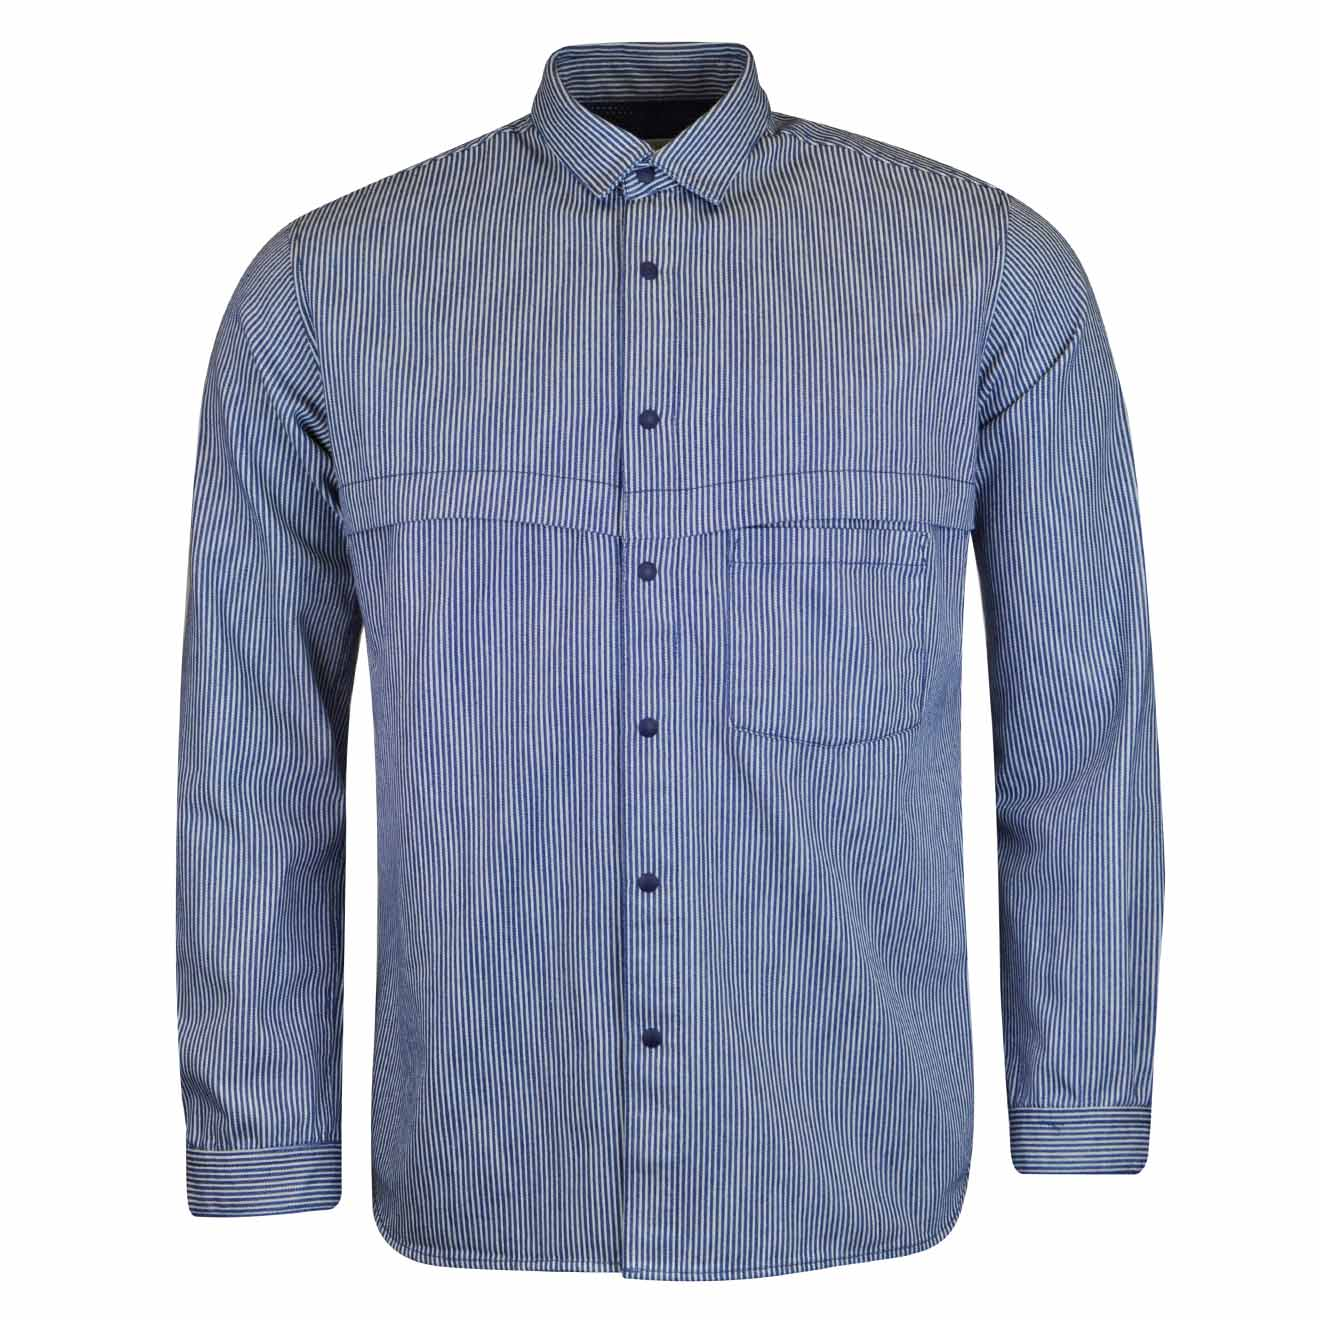 Manastash O.D Work Shirt Navy